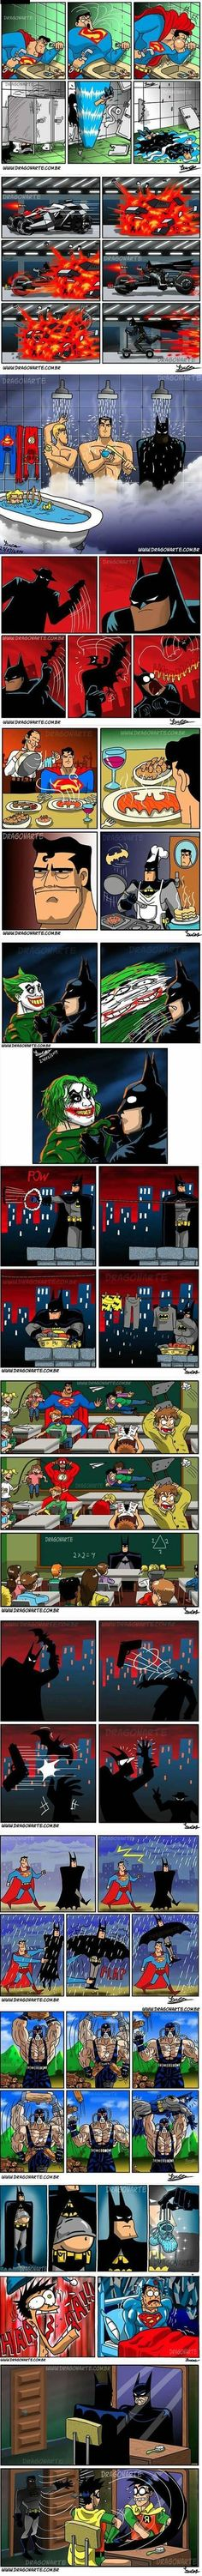 Some of the funniest Dragonartes Batman comics